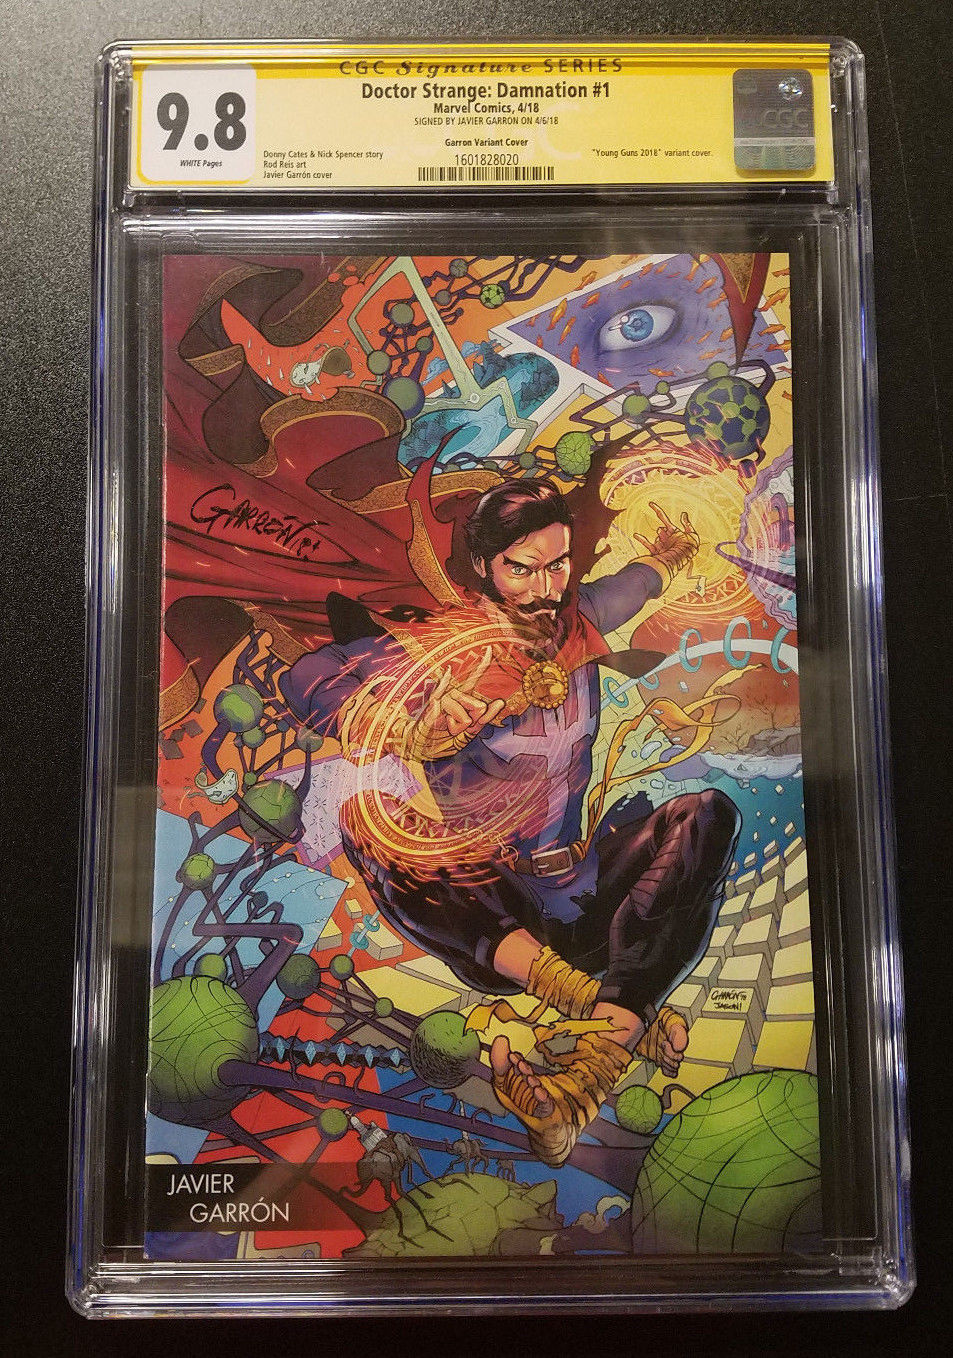 9.8 CGC SS Doctor Strange Damnation #1 Young Guns Variant SIGNED Comics 2018